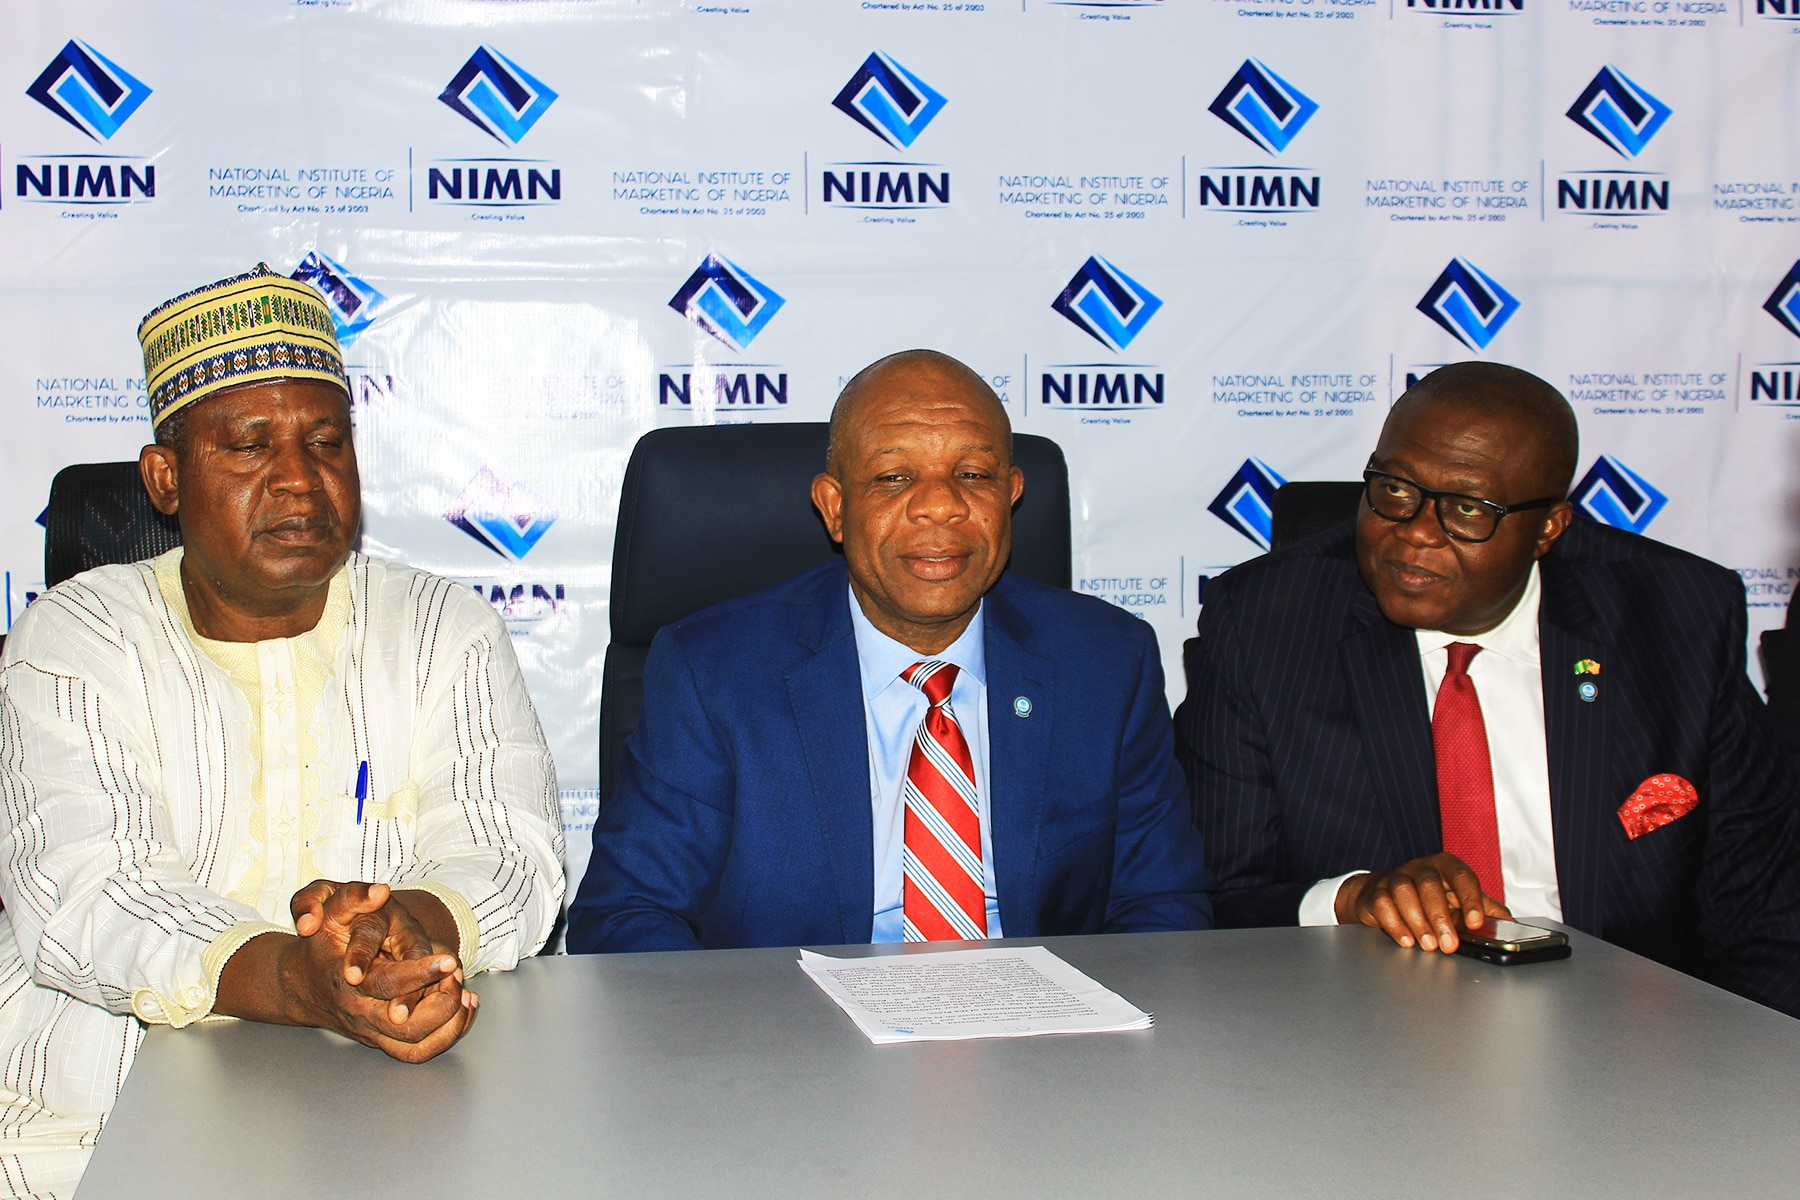 Press Conference Speech Delivered by Mr. Tony Agenmonmen, fnimn, President and Chairman of Council, NIMN, at Marketing House on 25 April 2019